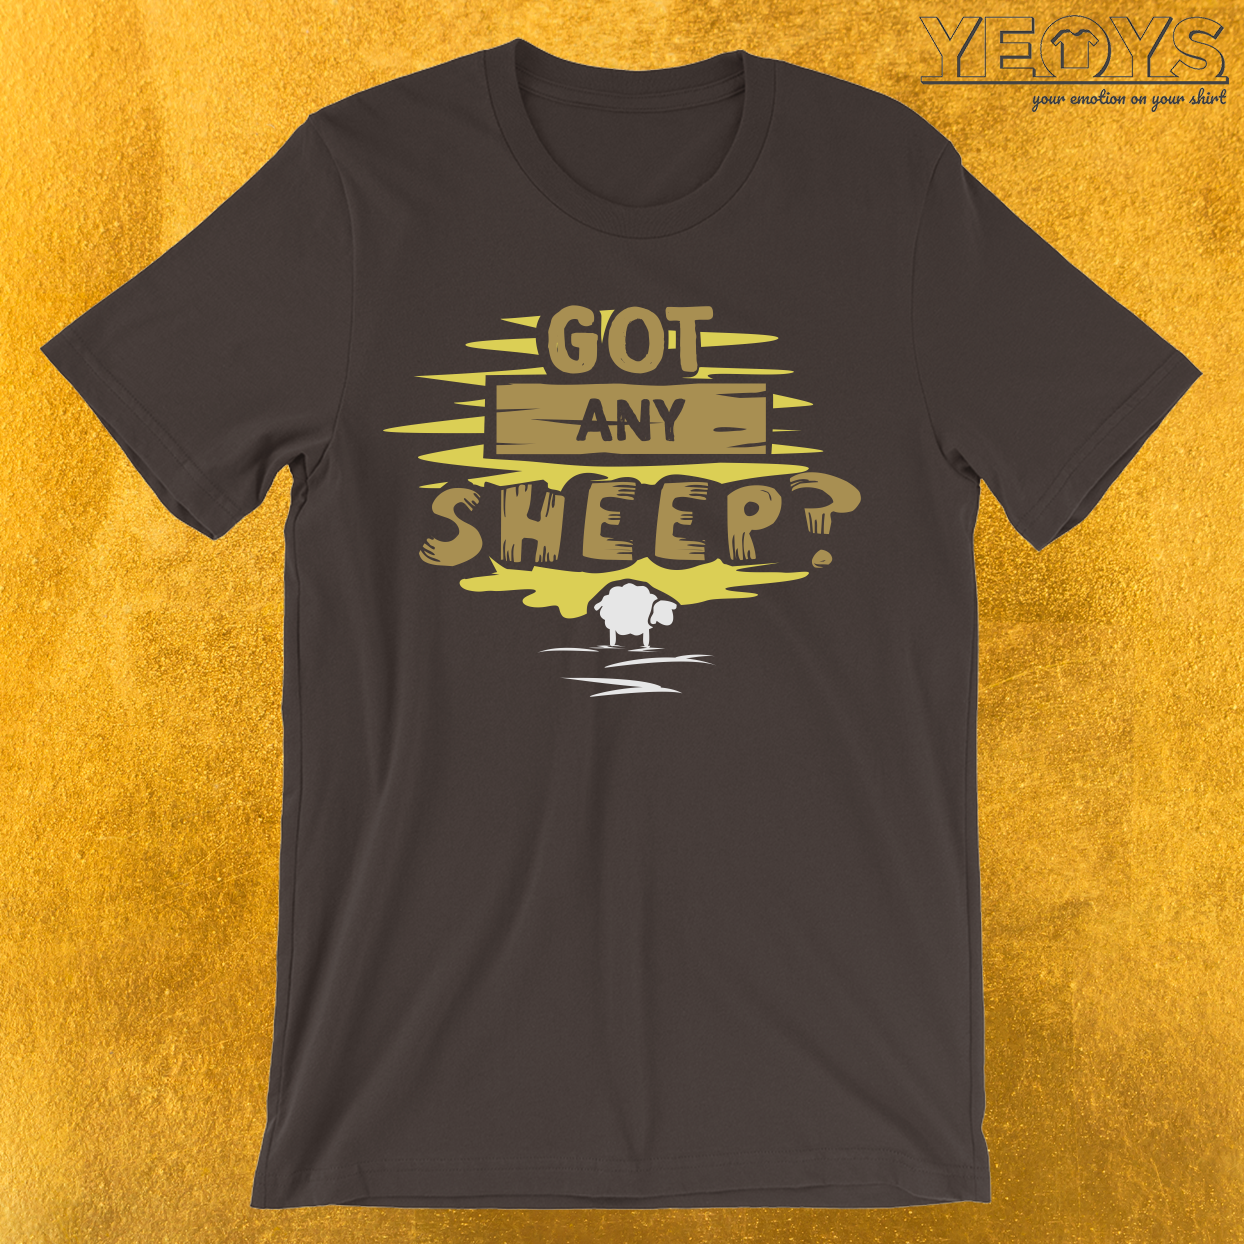 Got any sheep? T-Shirt